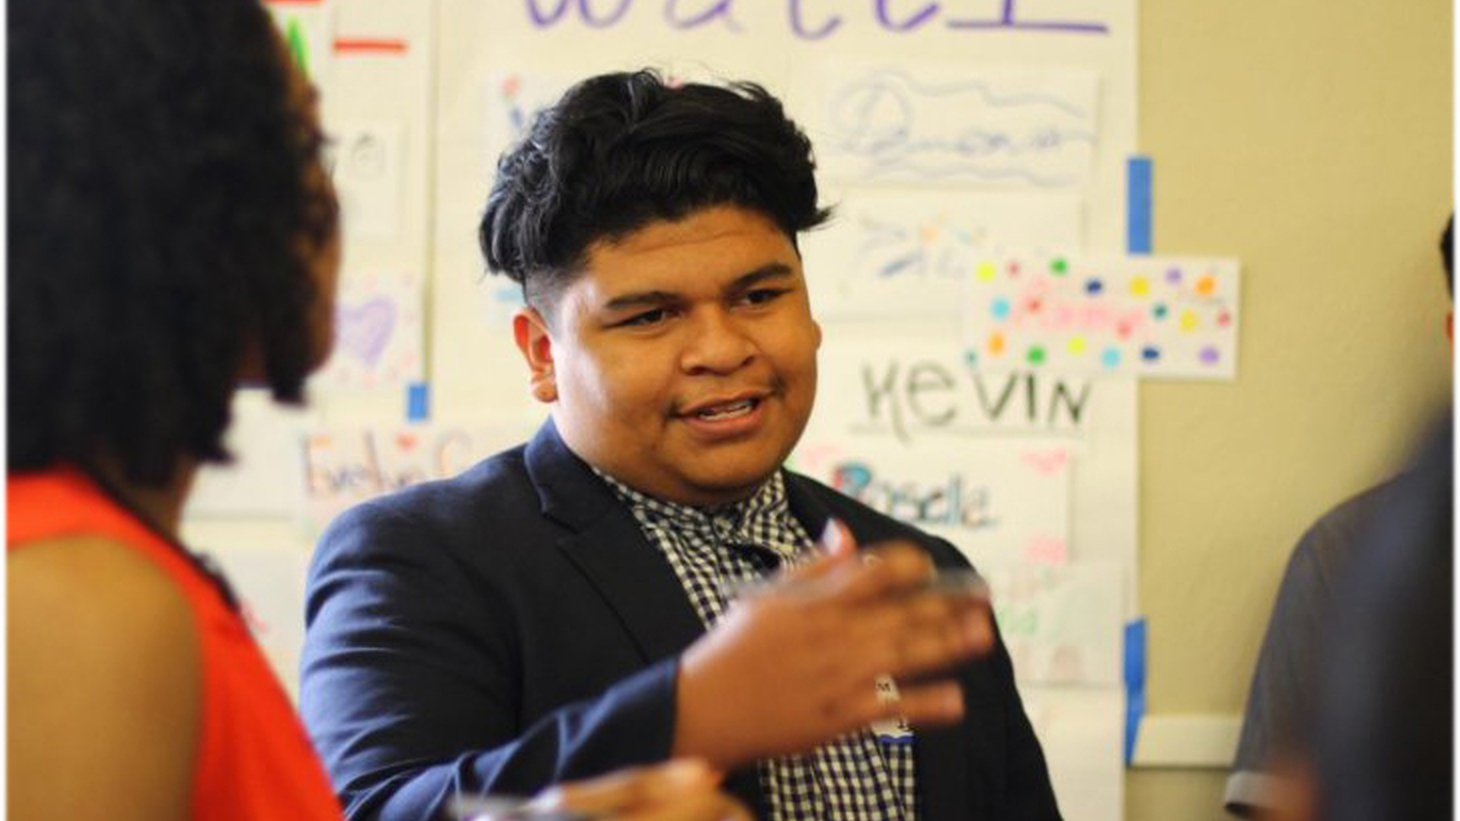 UC Santa Barbara senior Oscar Zarate takes stock of what an end to DACA – or the Deferred Action for Childhood Arrivals program – would mean for him as an undocumented student.